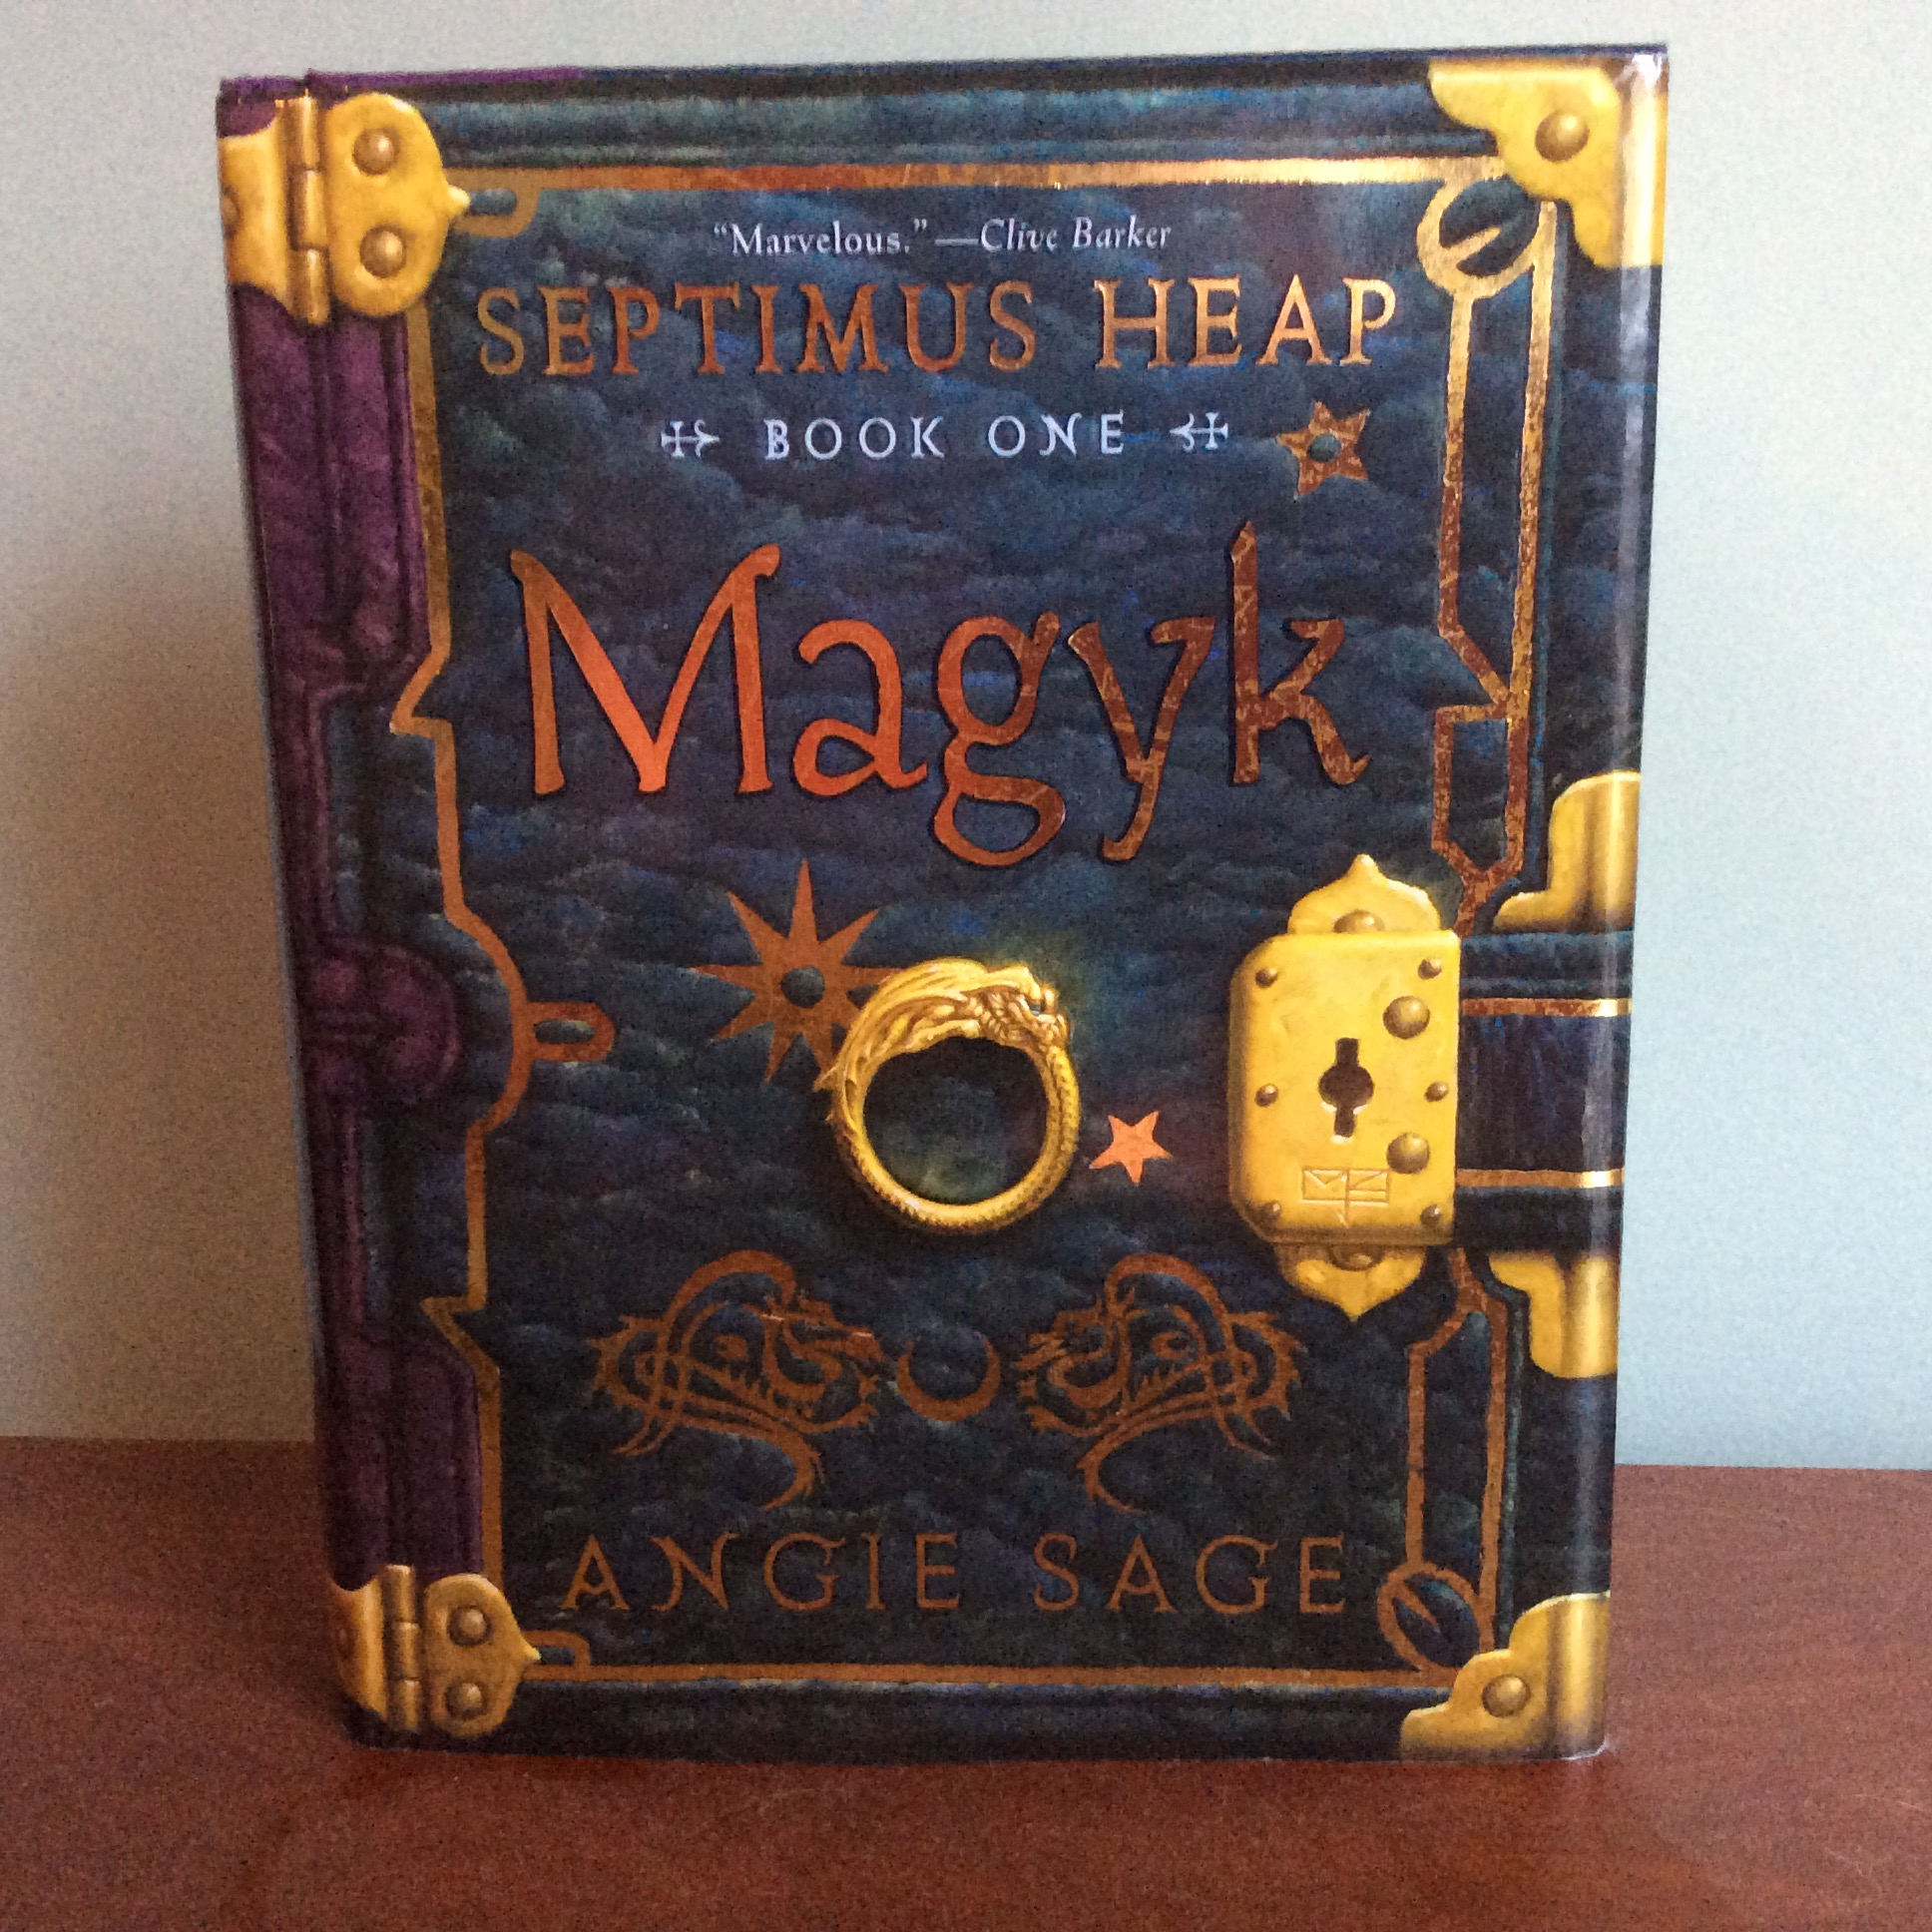 Review of Septimus Heap (Book One): Magyk by Angie Sage